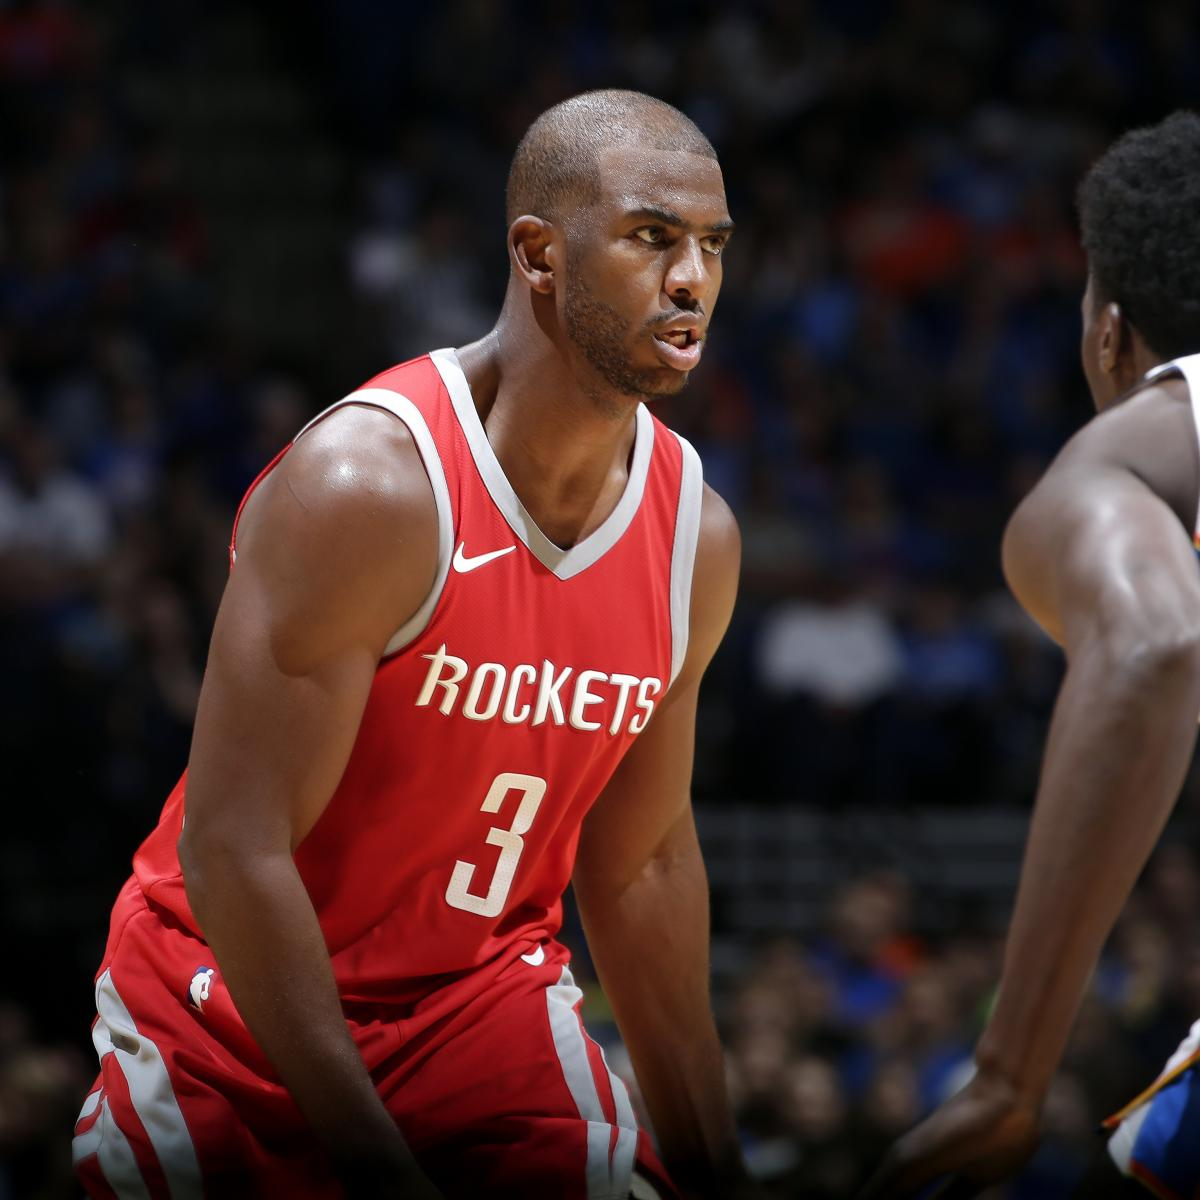 Rockets Vs Warriors Head To Head This Season: Chris Paul Suffers Knee Injury Vs. Warriors